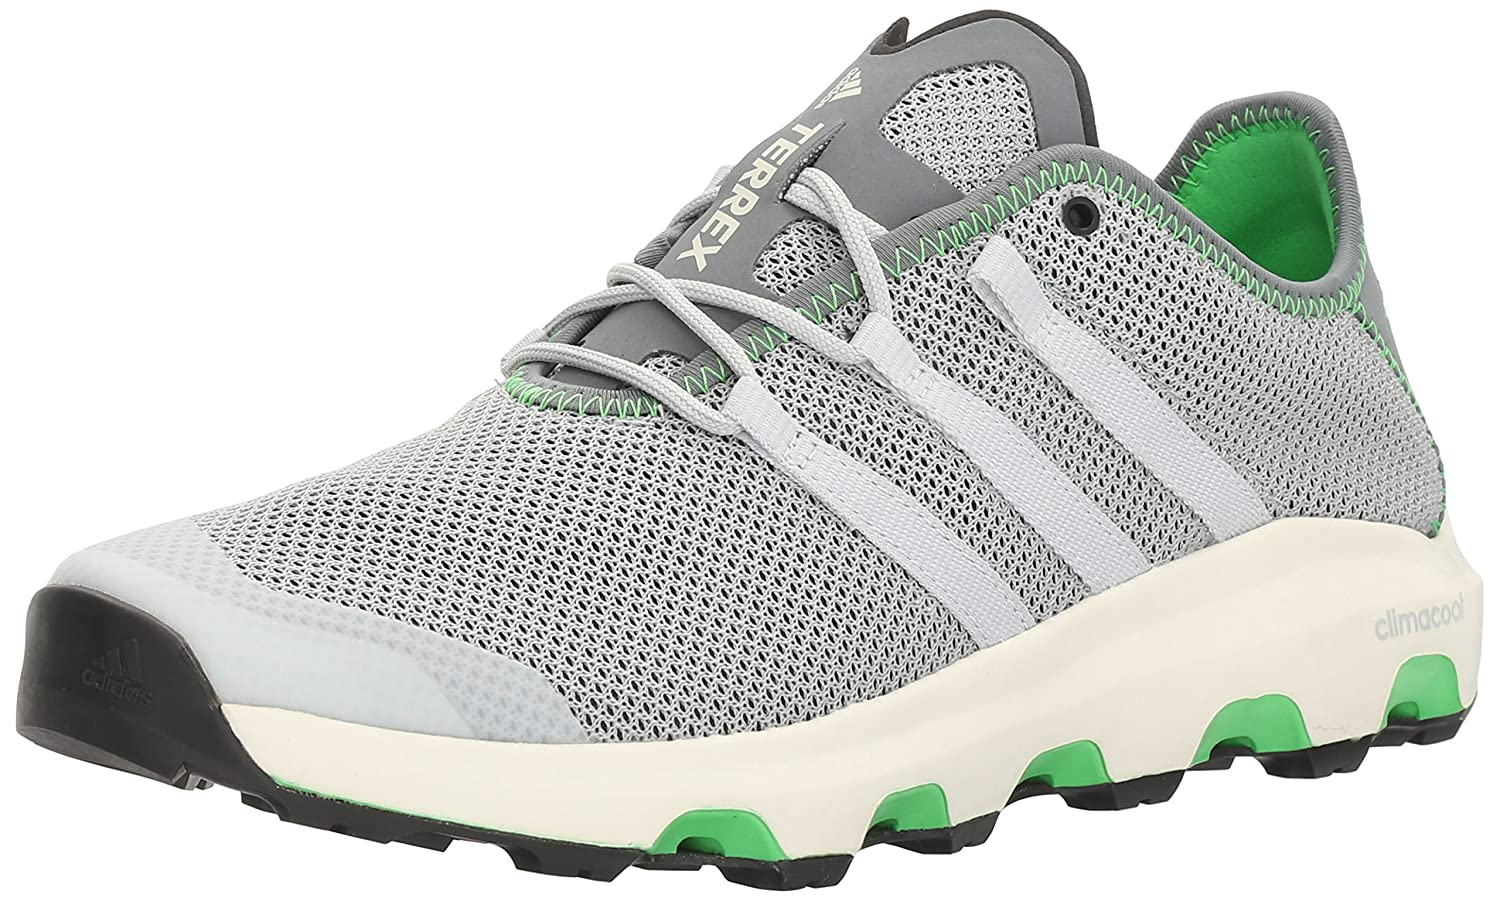 adidas outdoor Men's Terrex Climacool Voyager Water Shoe B01HNF889Y 7.5 D(M) US|Clear Onix/Clear Grey/Energy Green